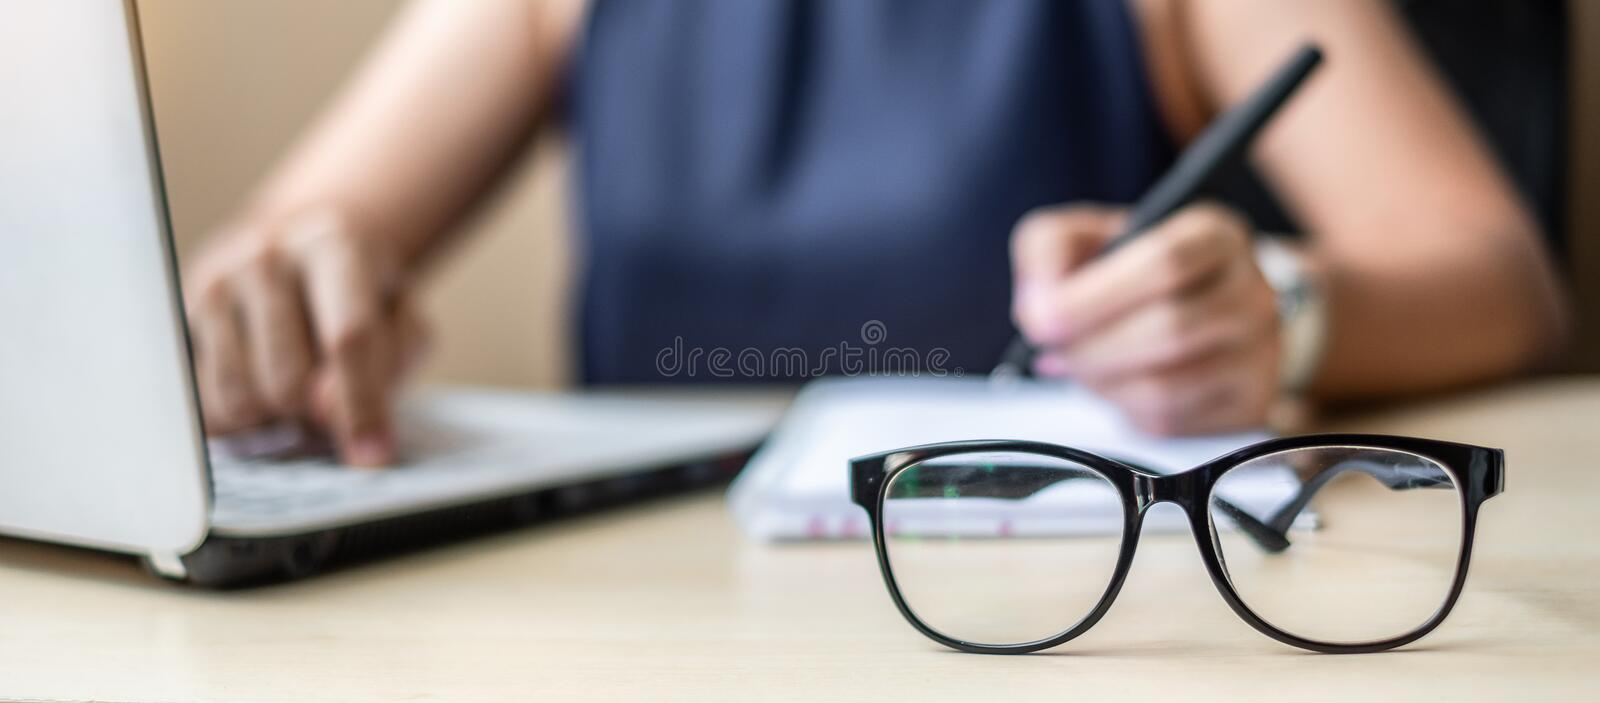 Close up eye glasses with Businesswoman using laptop analysis marketing plan background. Business, Finance and Vision concepts stock photo